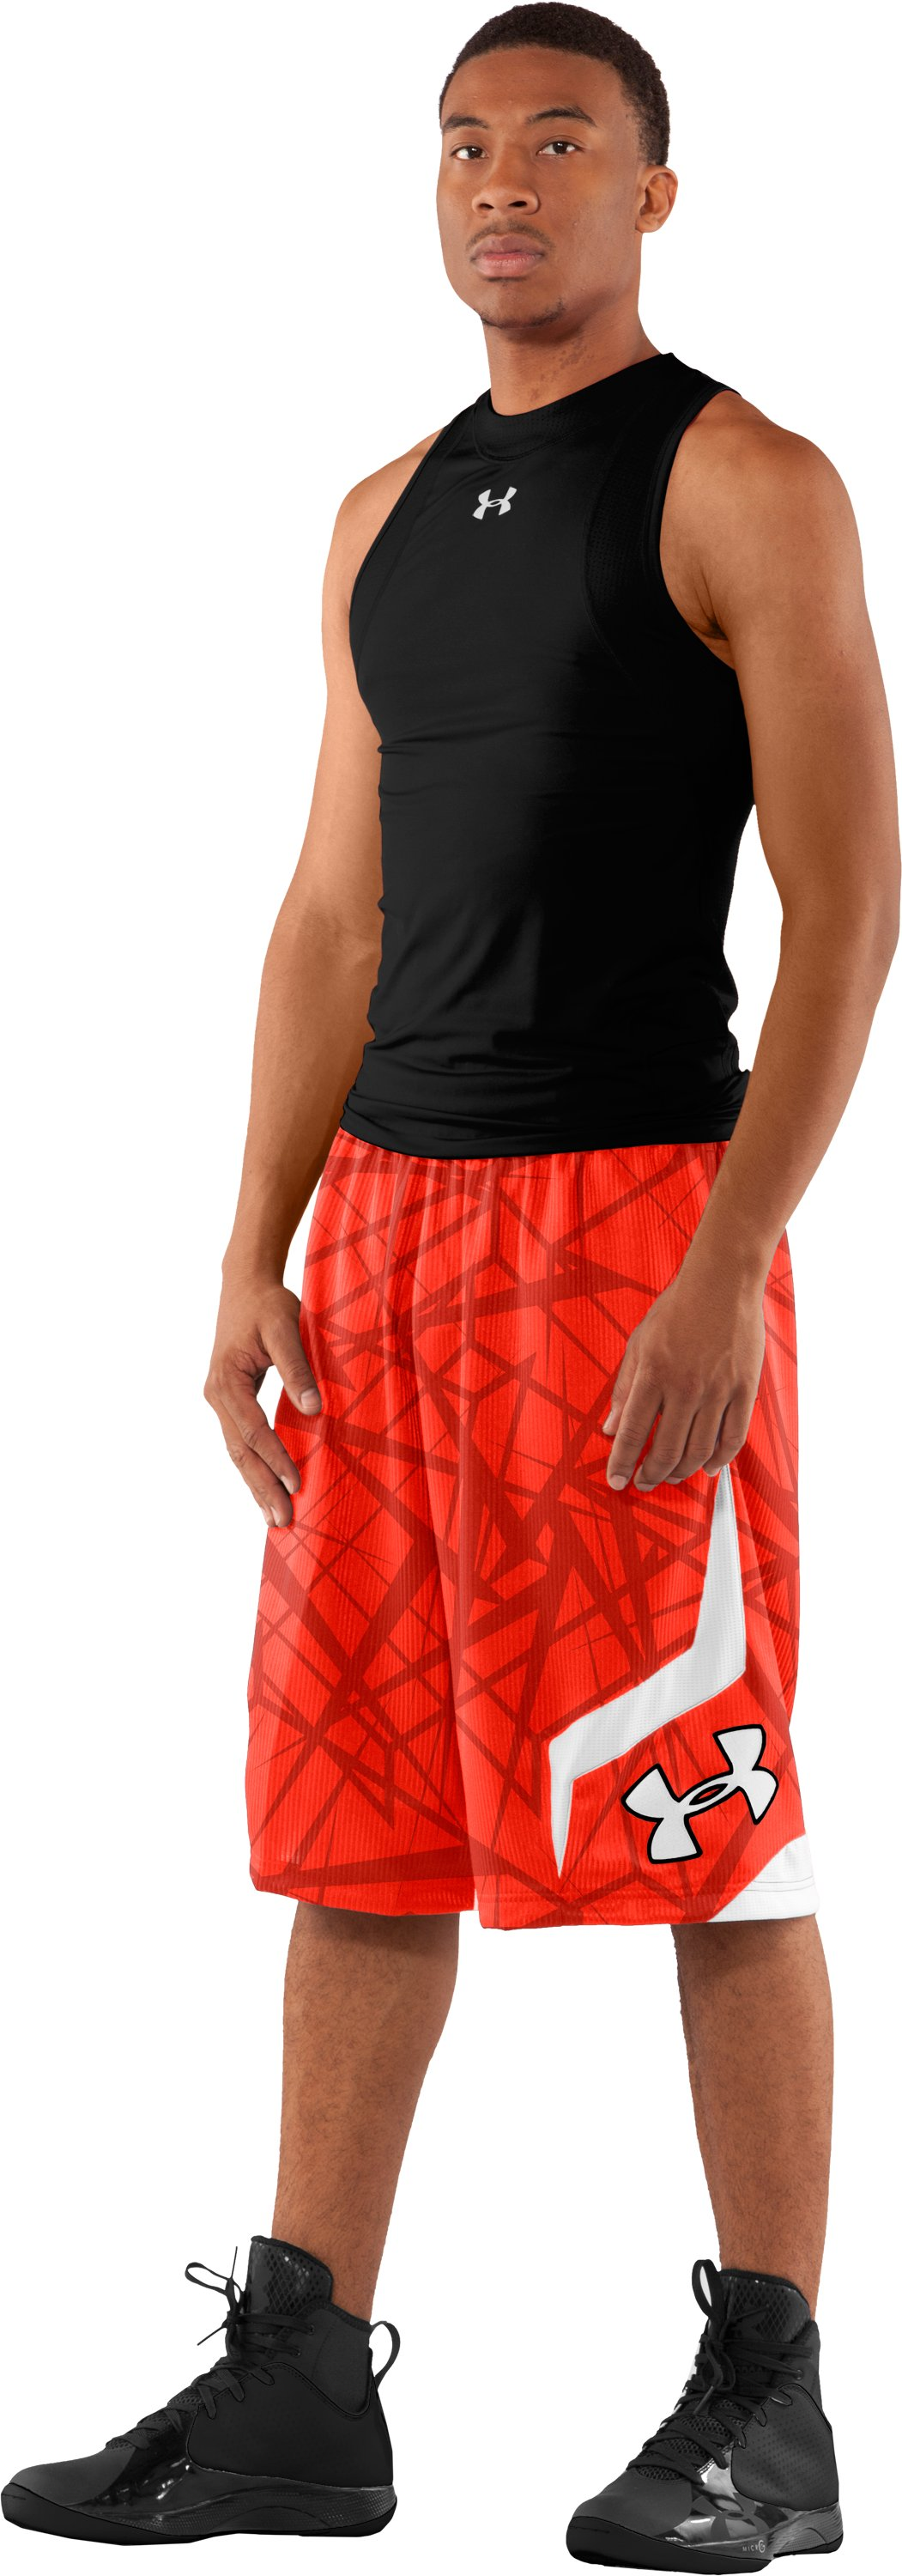 "Men's Printed UA Valkyrie 12"" Basketball Shorts, Fuego, zoomed image"